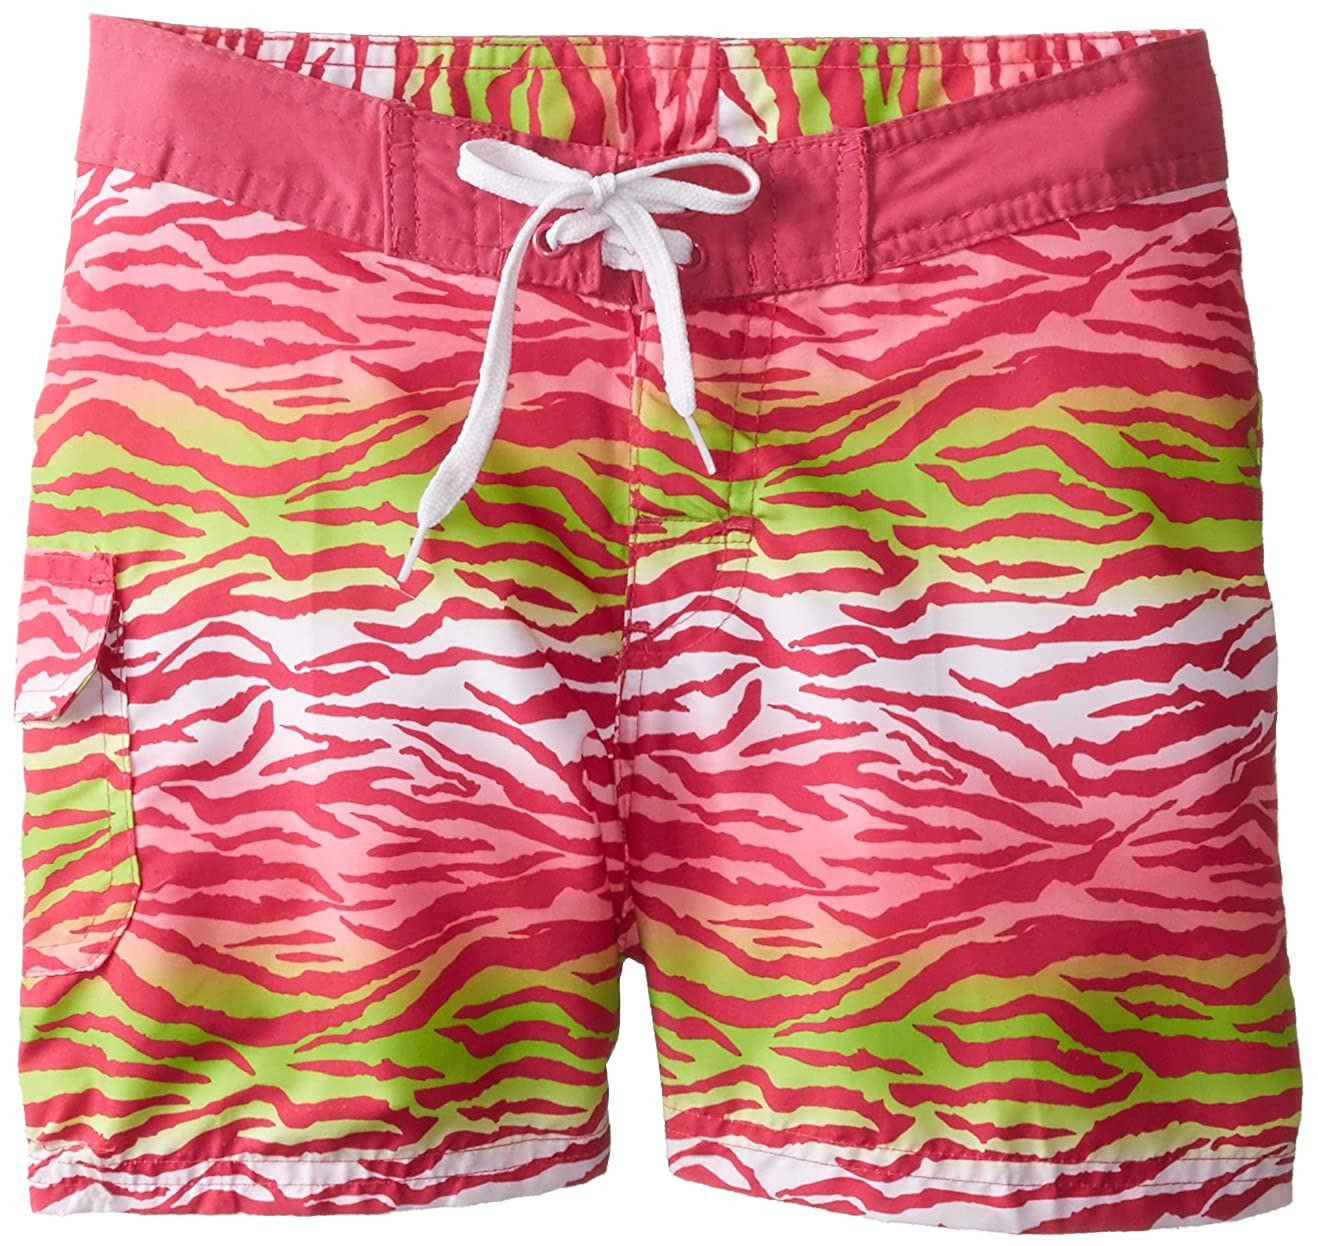 Kanu Surf Big Girls' Malea Board Short Pink X-Large (16) Kanu Surf Girls 7-16